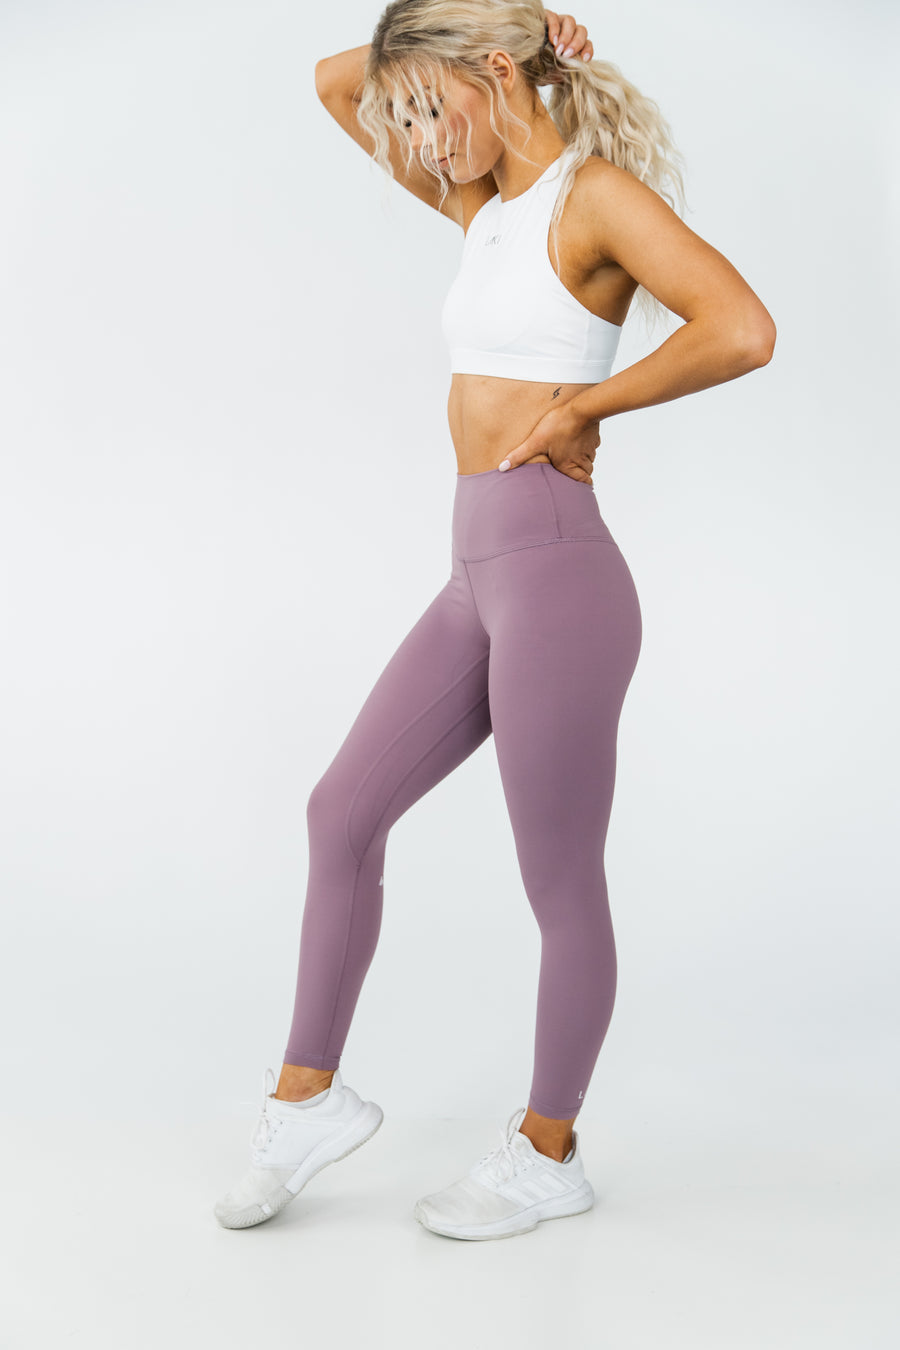 LEGACY ii LEGGINGS - ROSE